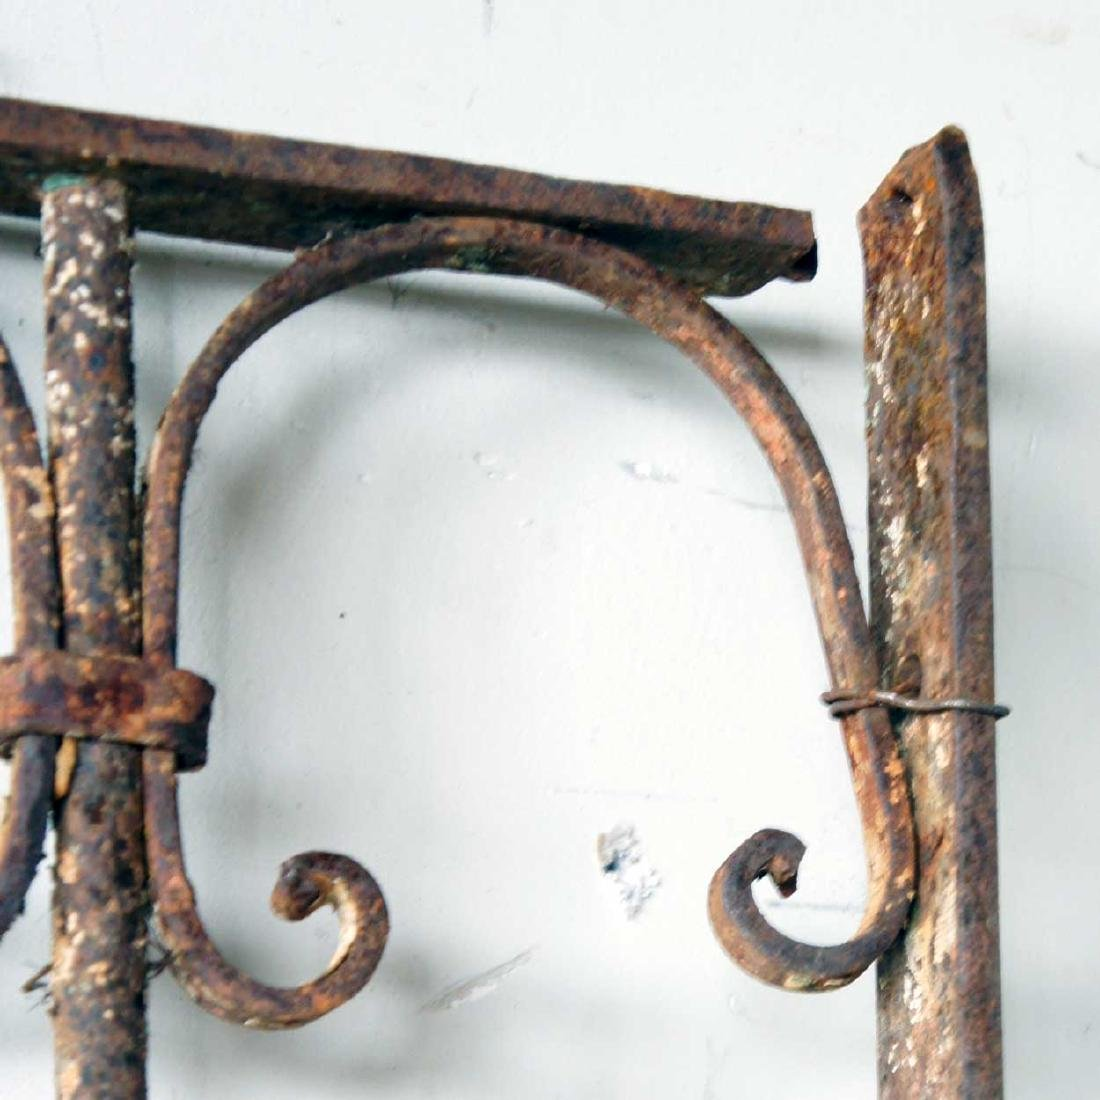 2 Spanish Wrought Iron Window Grilles - 2